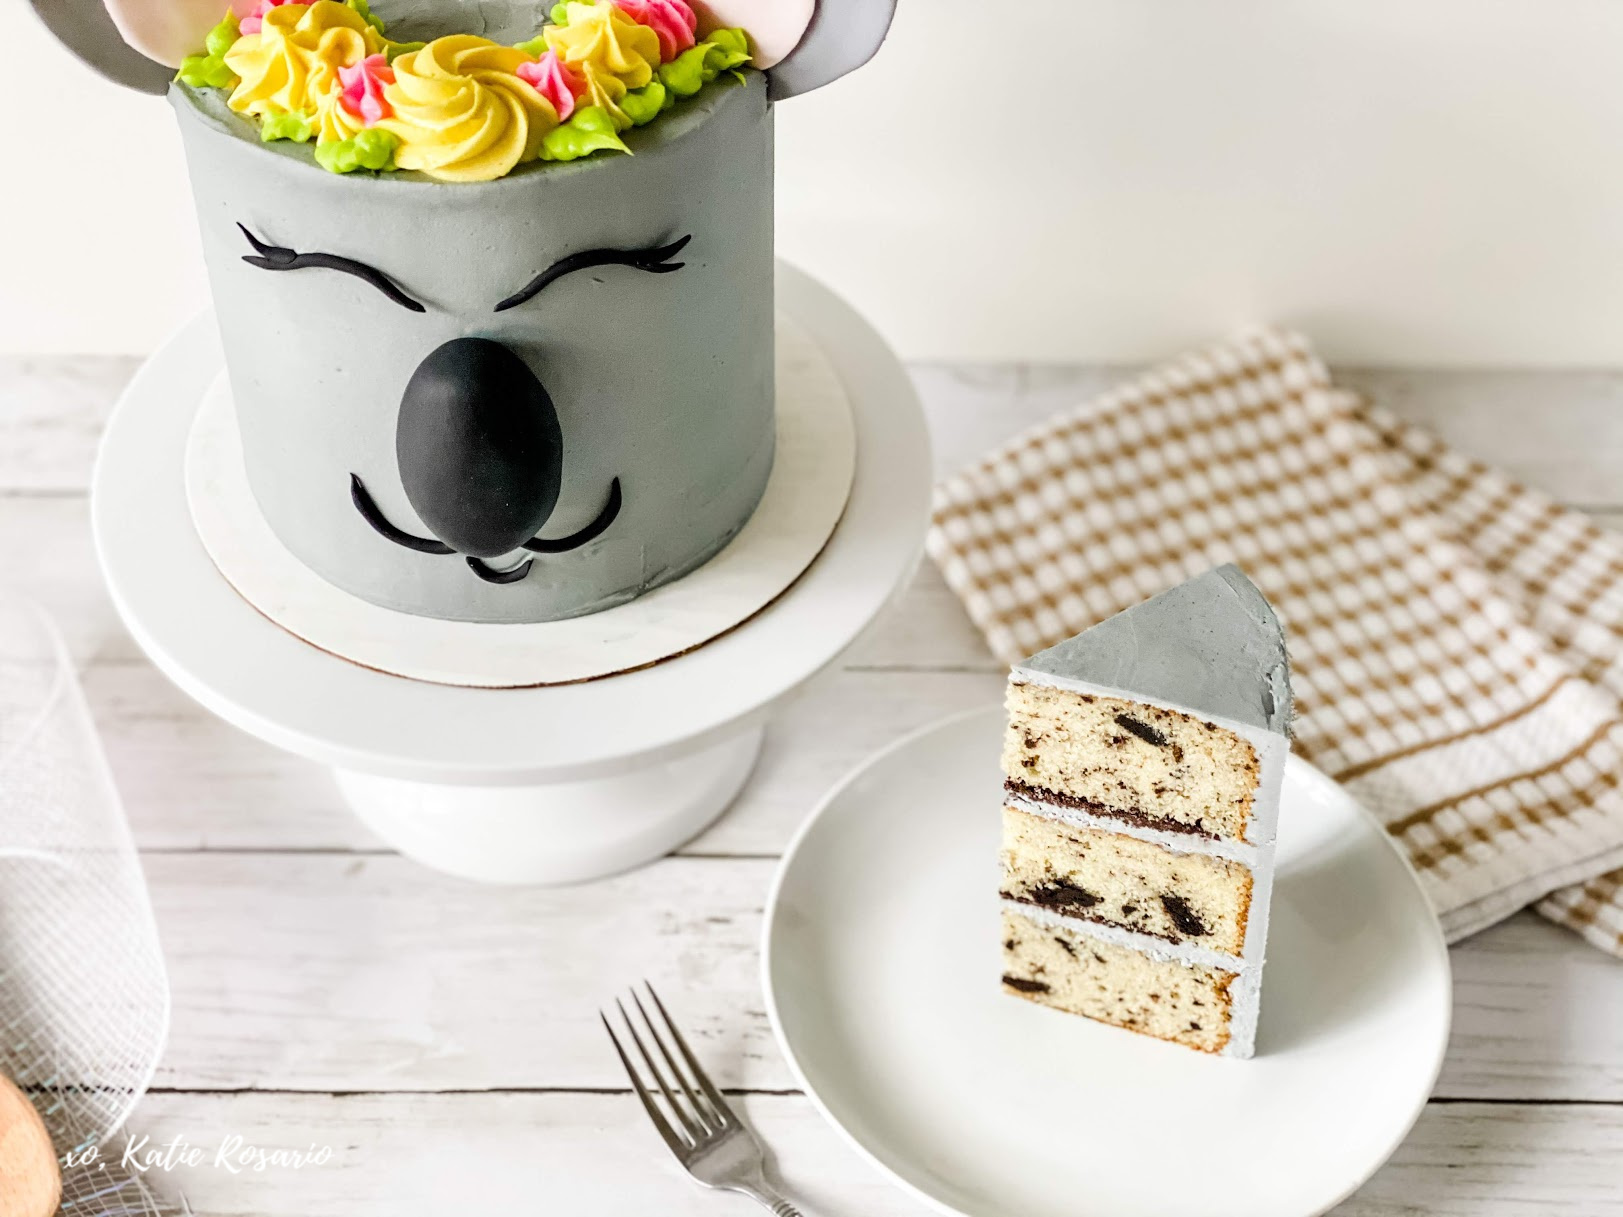 This koala cake is super cute and ready for any kids' party, summer event, or a friend's birthday. This cookies n cream cake is a delicious recipe that's a crowd-pleaser. This Koala cake is not only beautiful to look at but it's also insanely delicious. DIY Koala Cake tutorial for Beginner Bakers! #xokatierosario #koalacake #cookiesncreamcake #animalcake #cakedecoratingtips